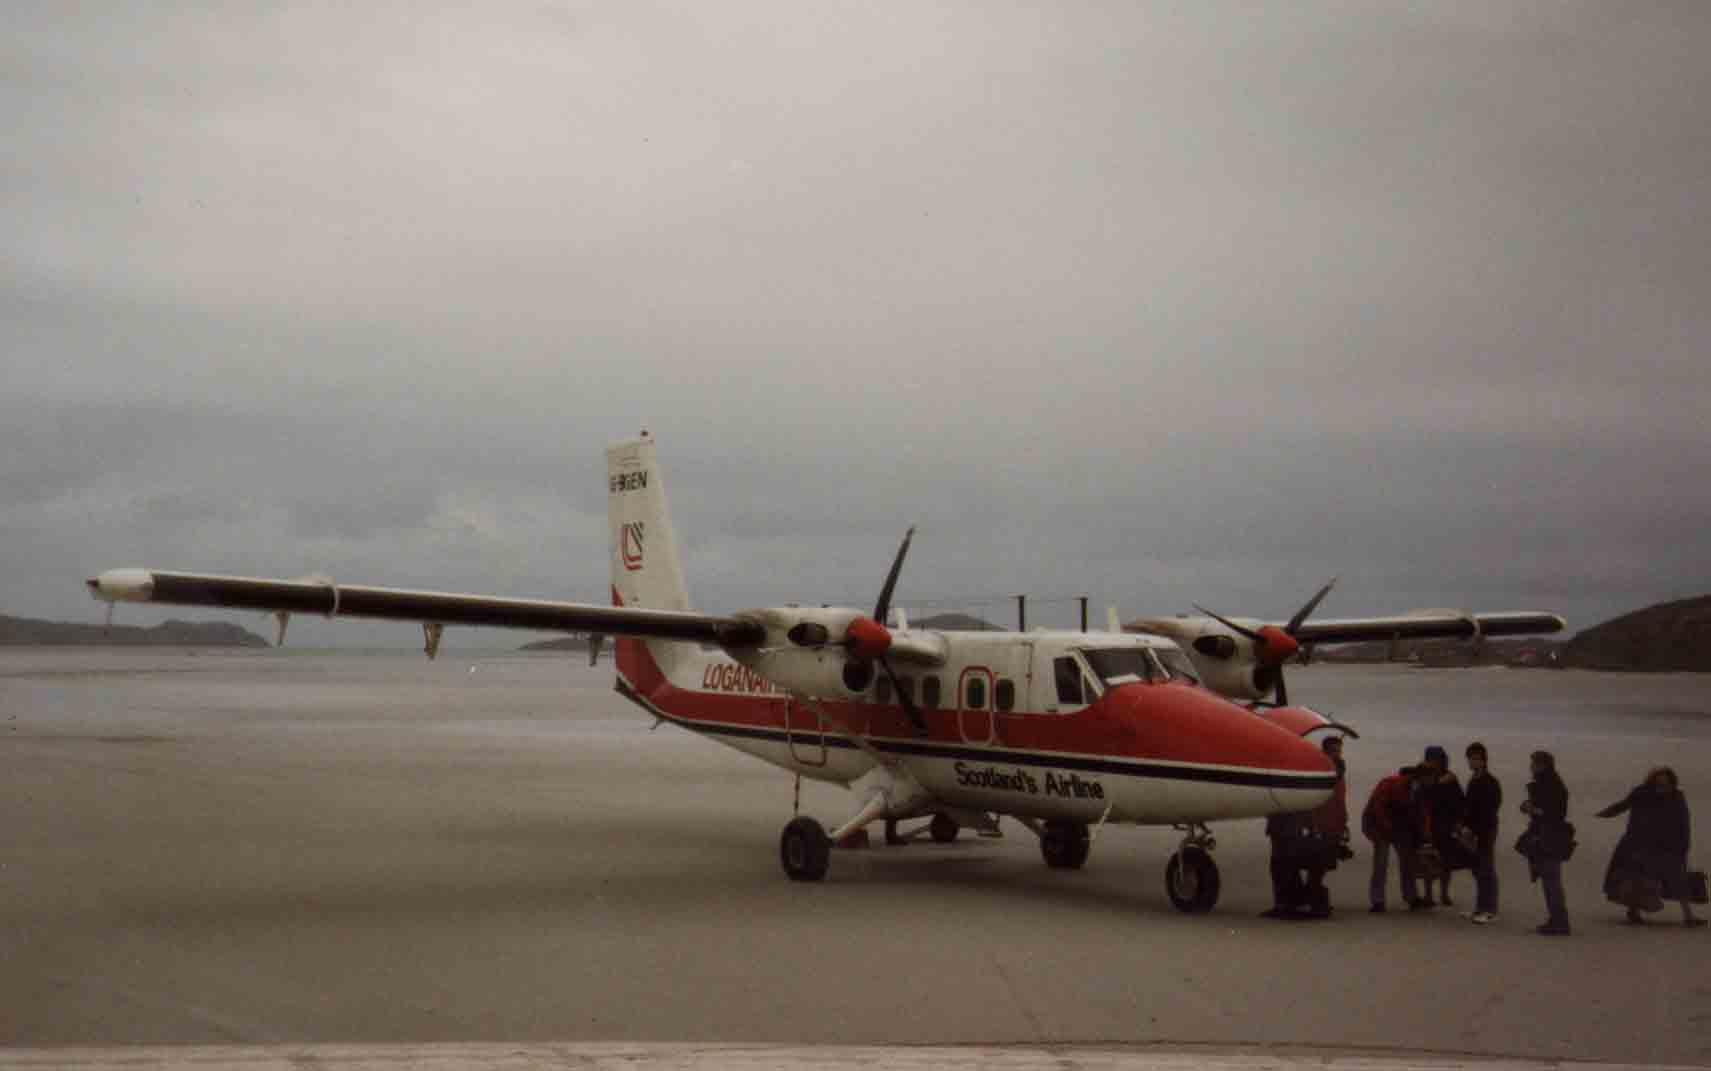 Loganair flight unloading on Traigh Mhor, Barra